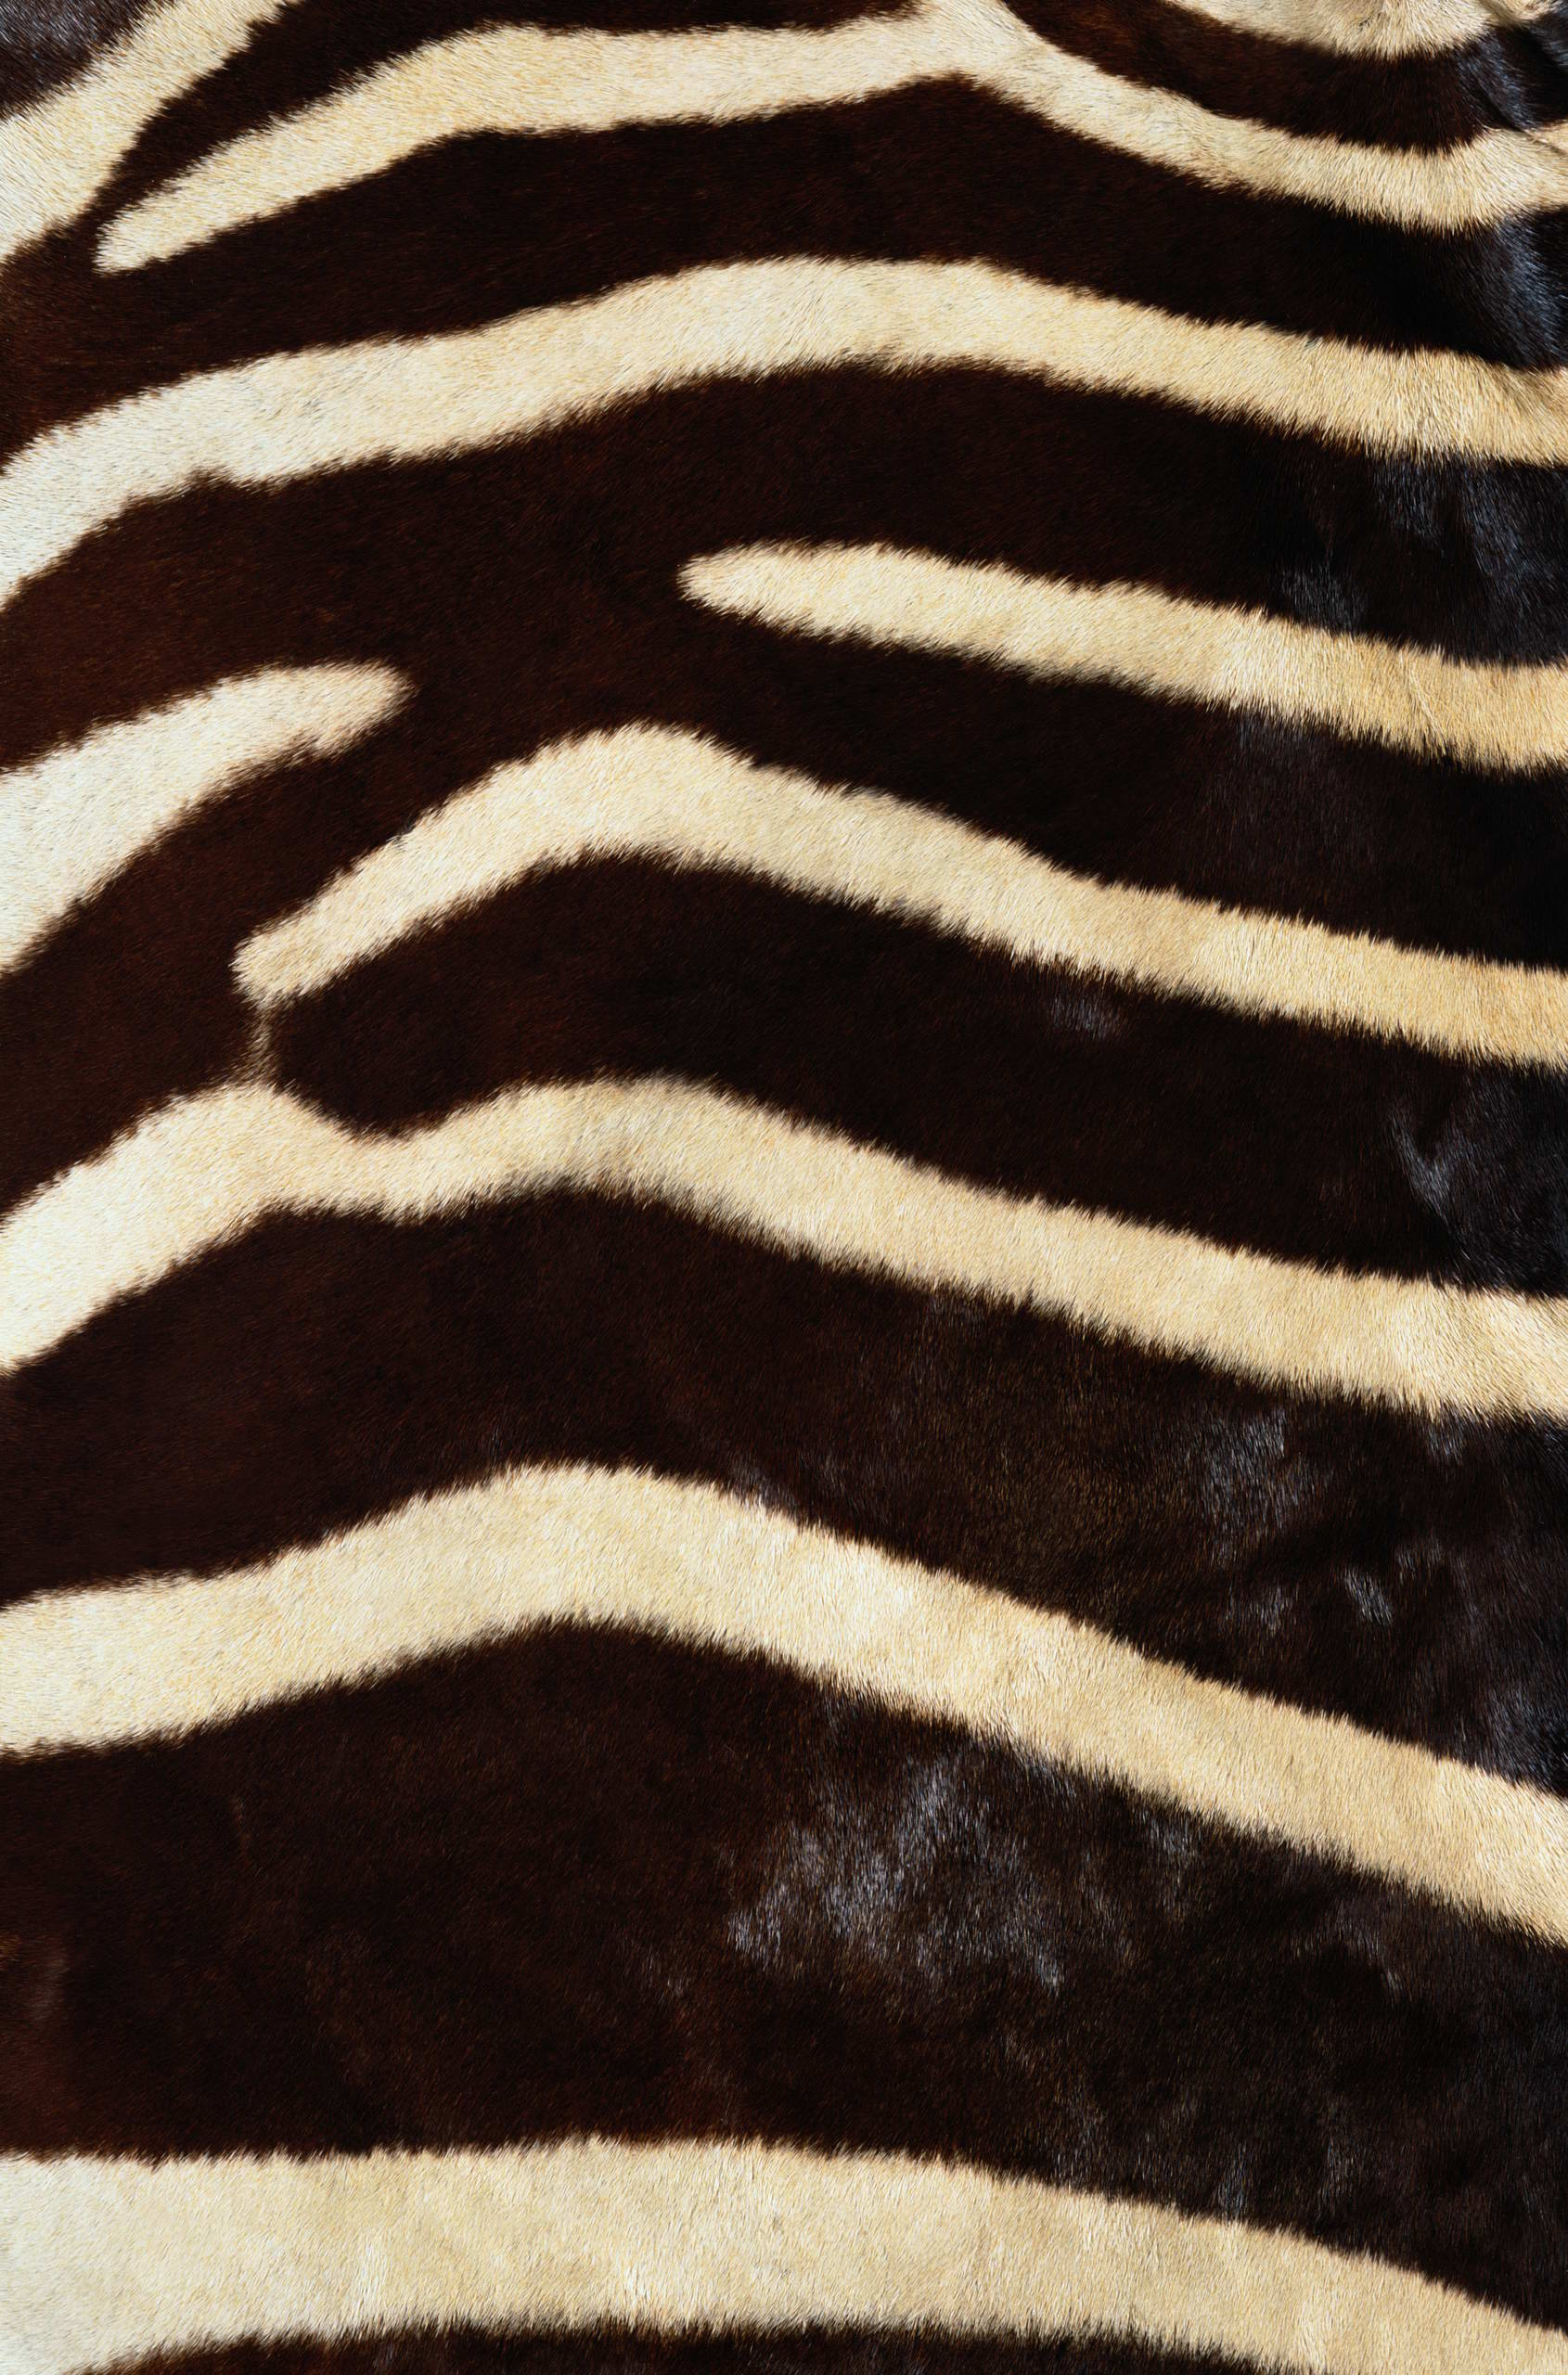 , texture fur, zebra fur texture background, background